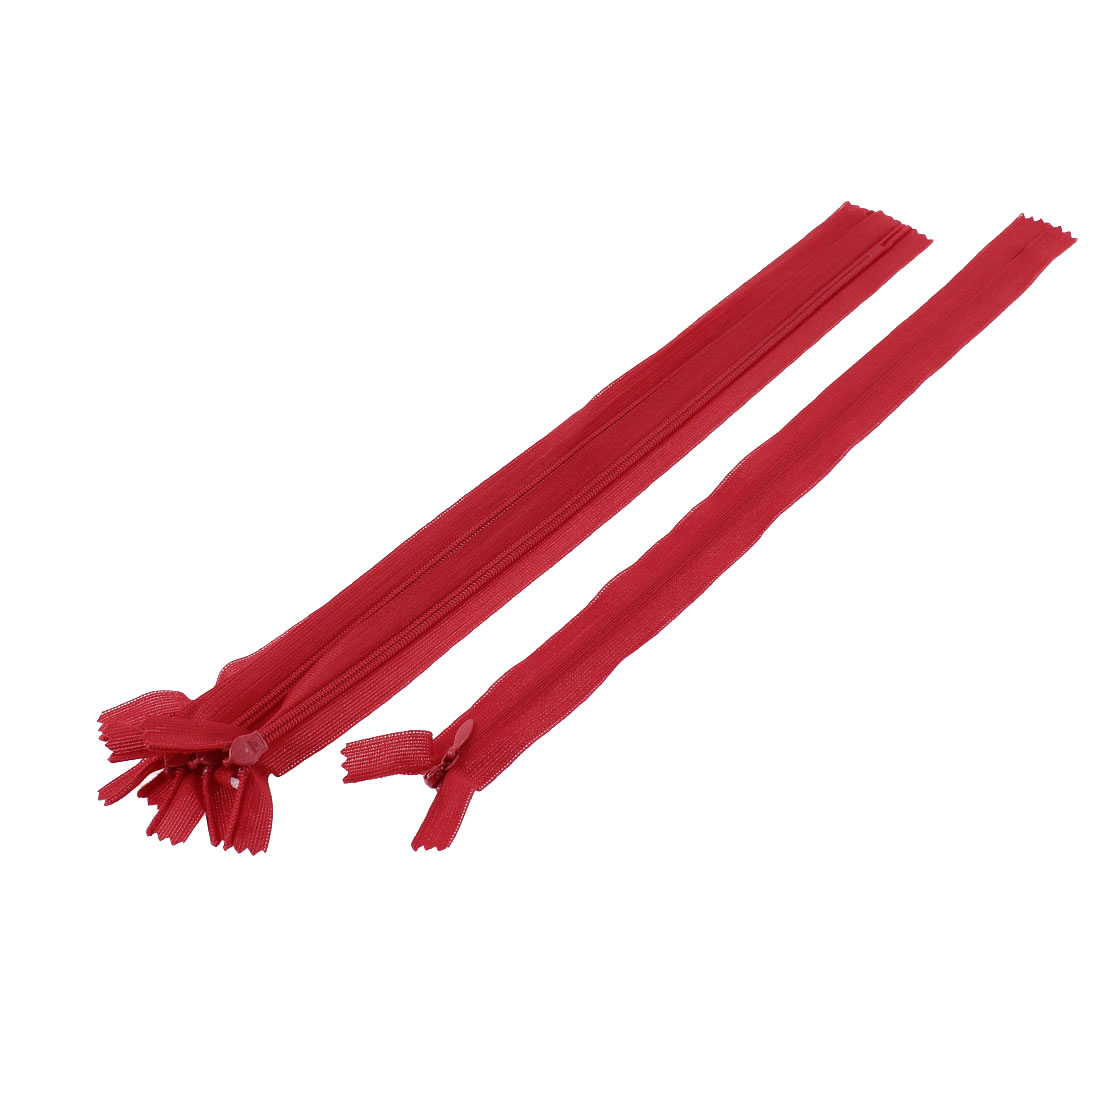 5 Pcs Red 12-inch Nylon Zippers Zips for Doll Clothes